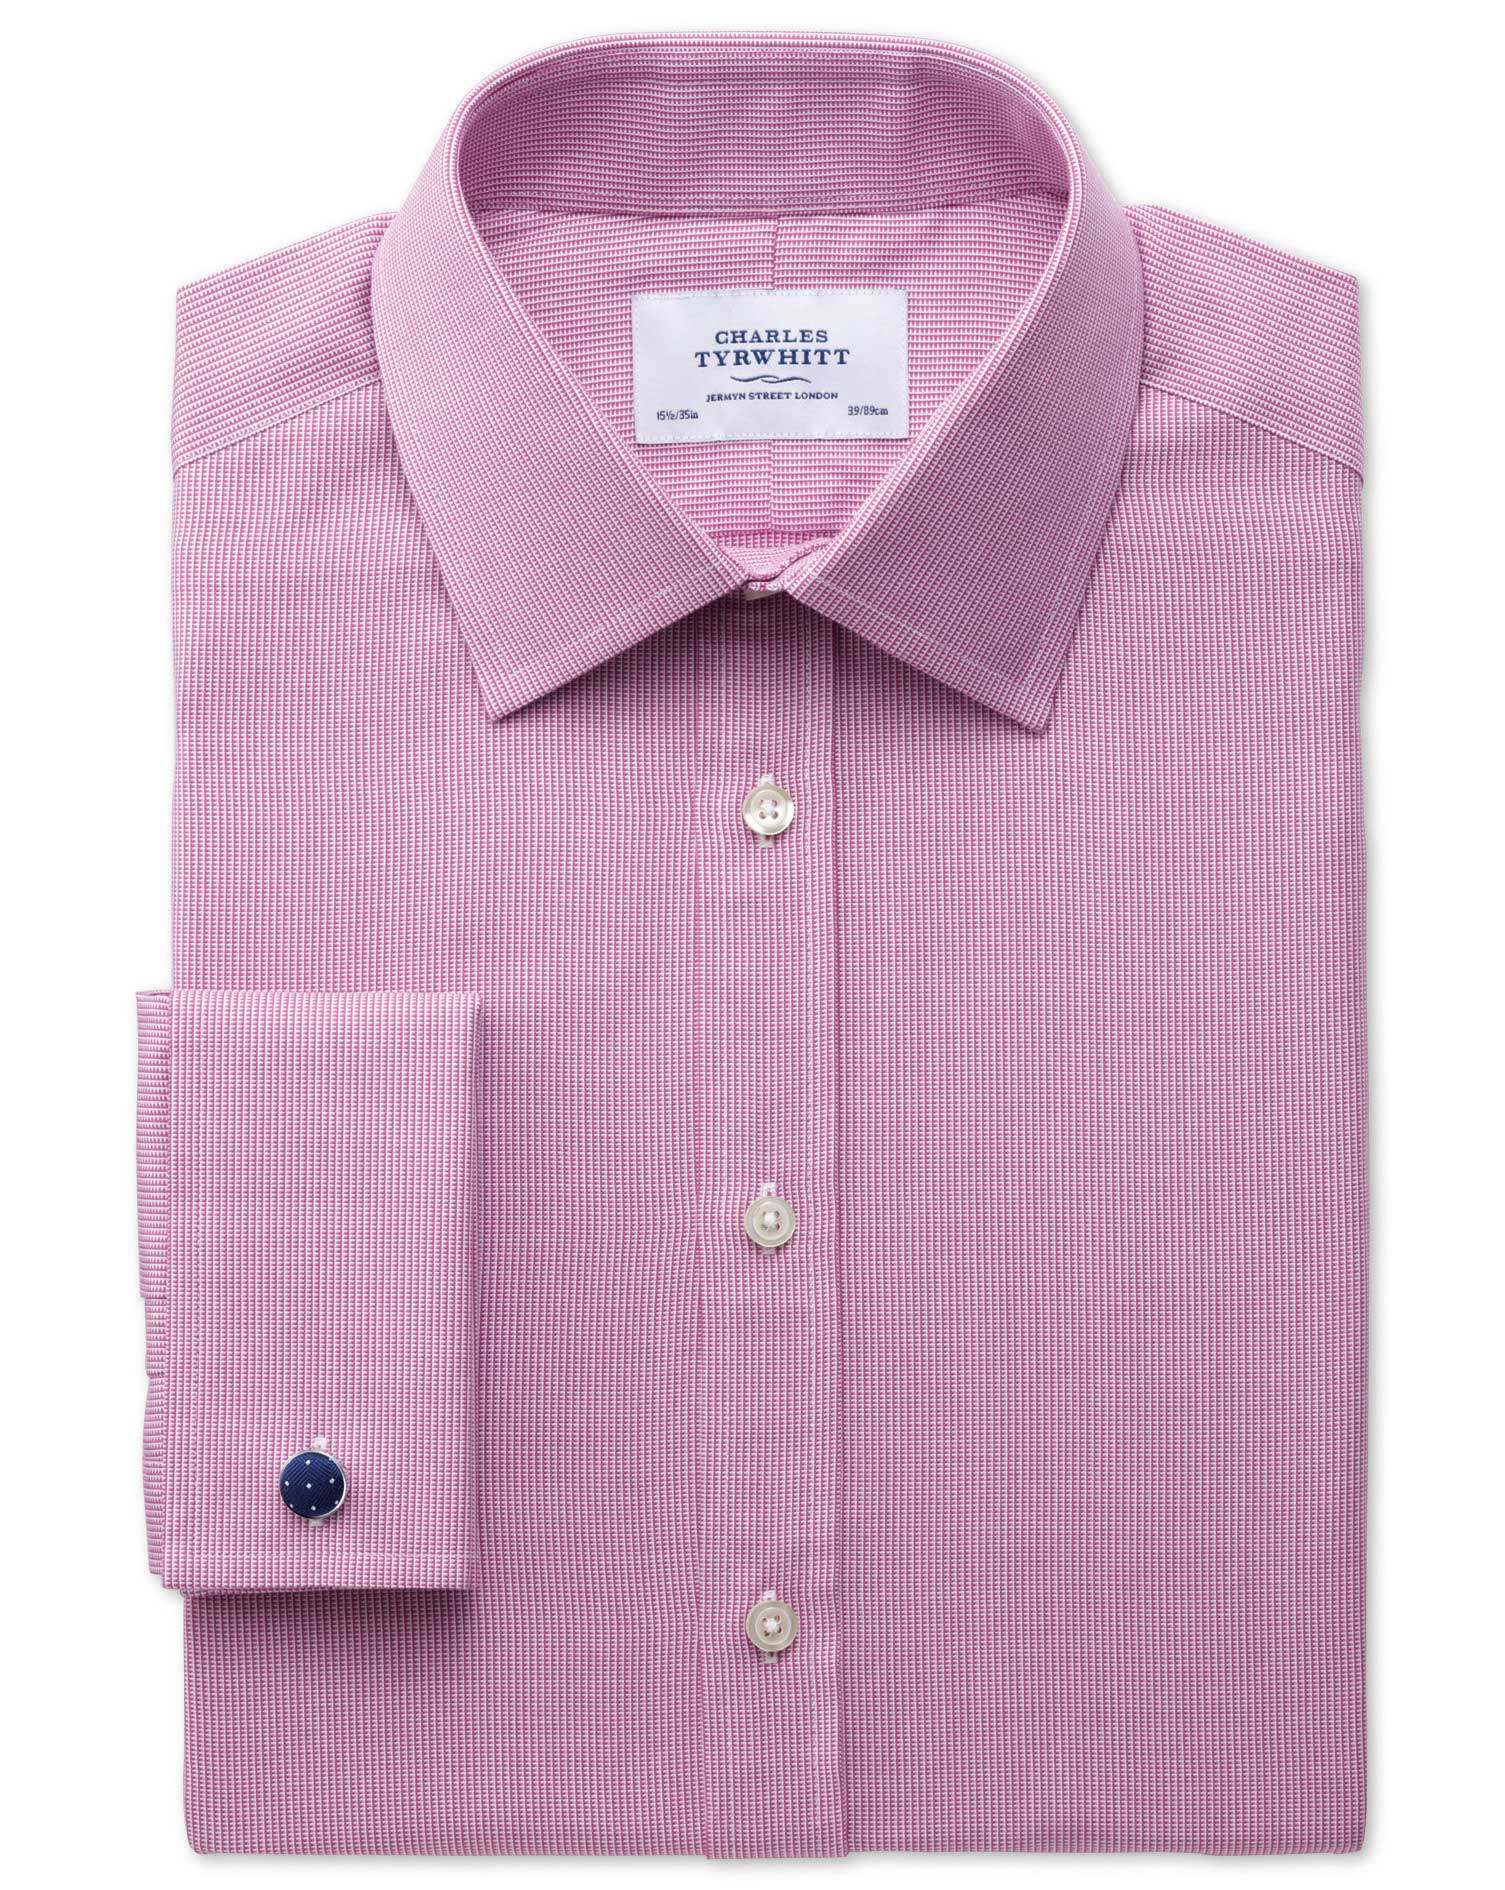 Extra Slim Fit Oxford Magenta Cotton Formal Shirt Double Cuff Size 15/32 by Charles Tyrwhitt